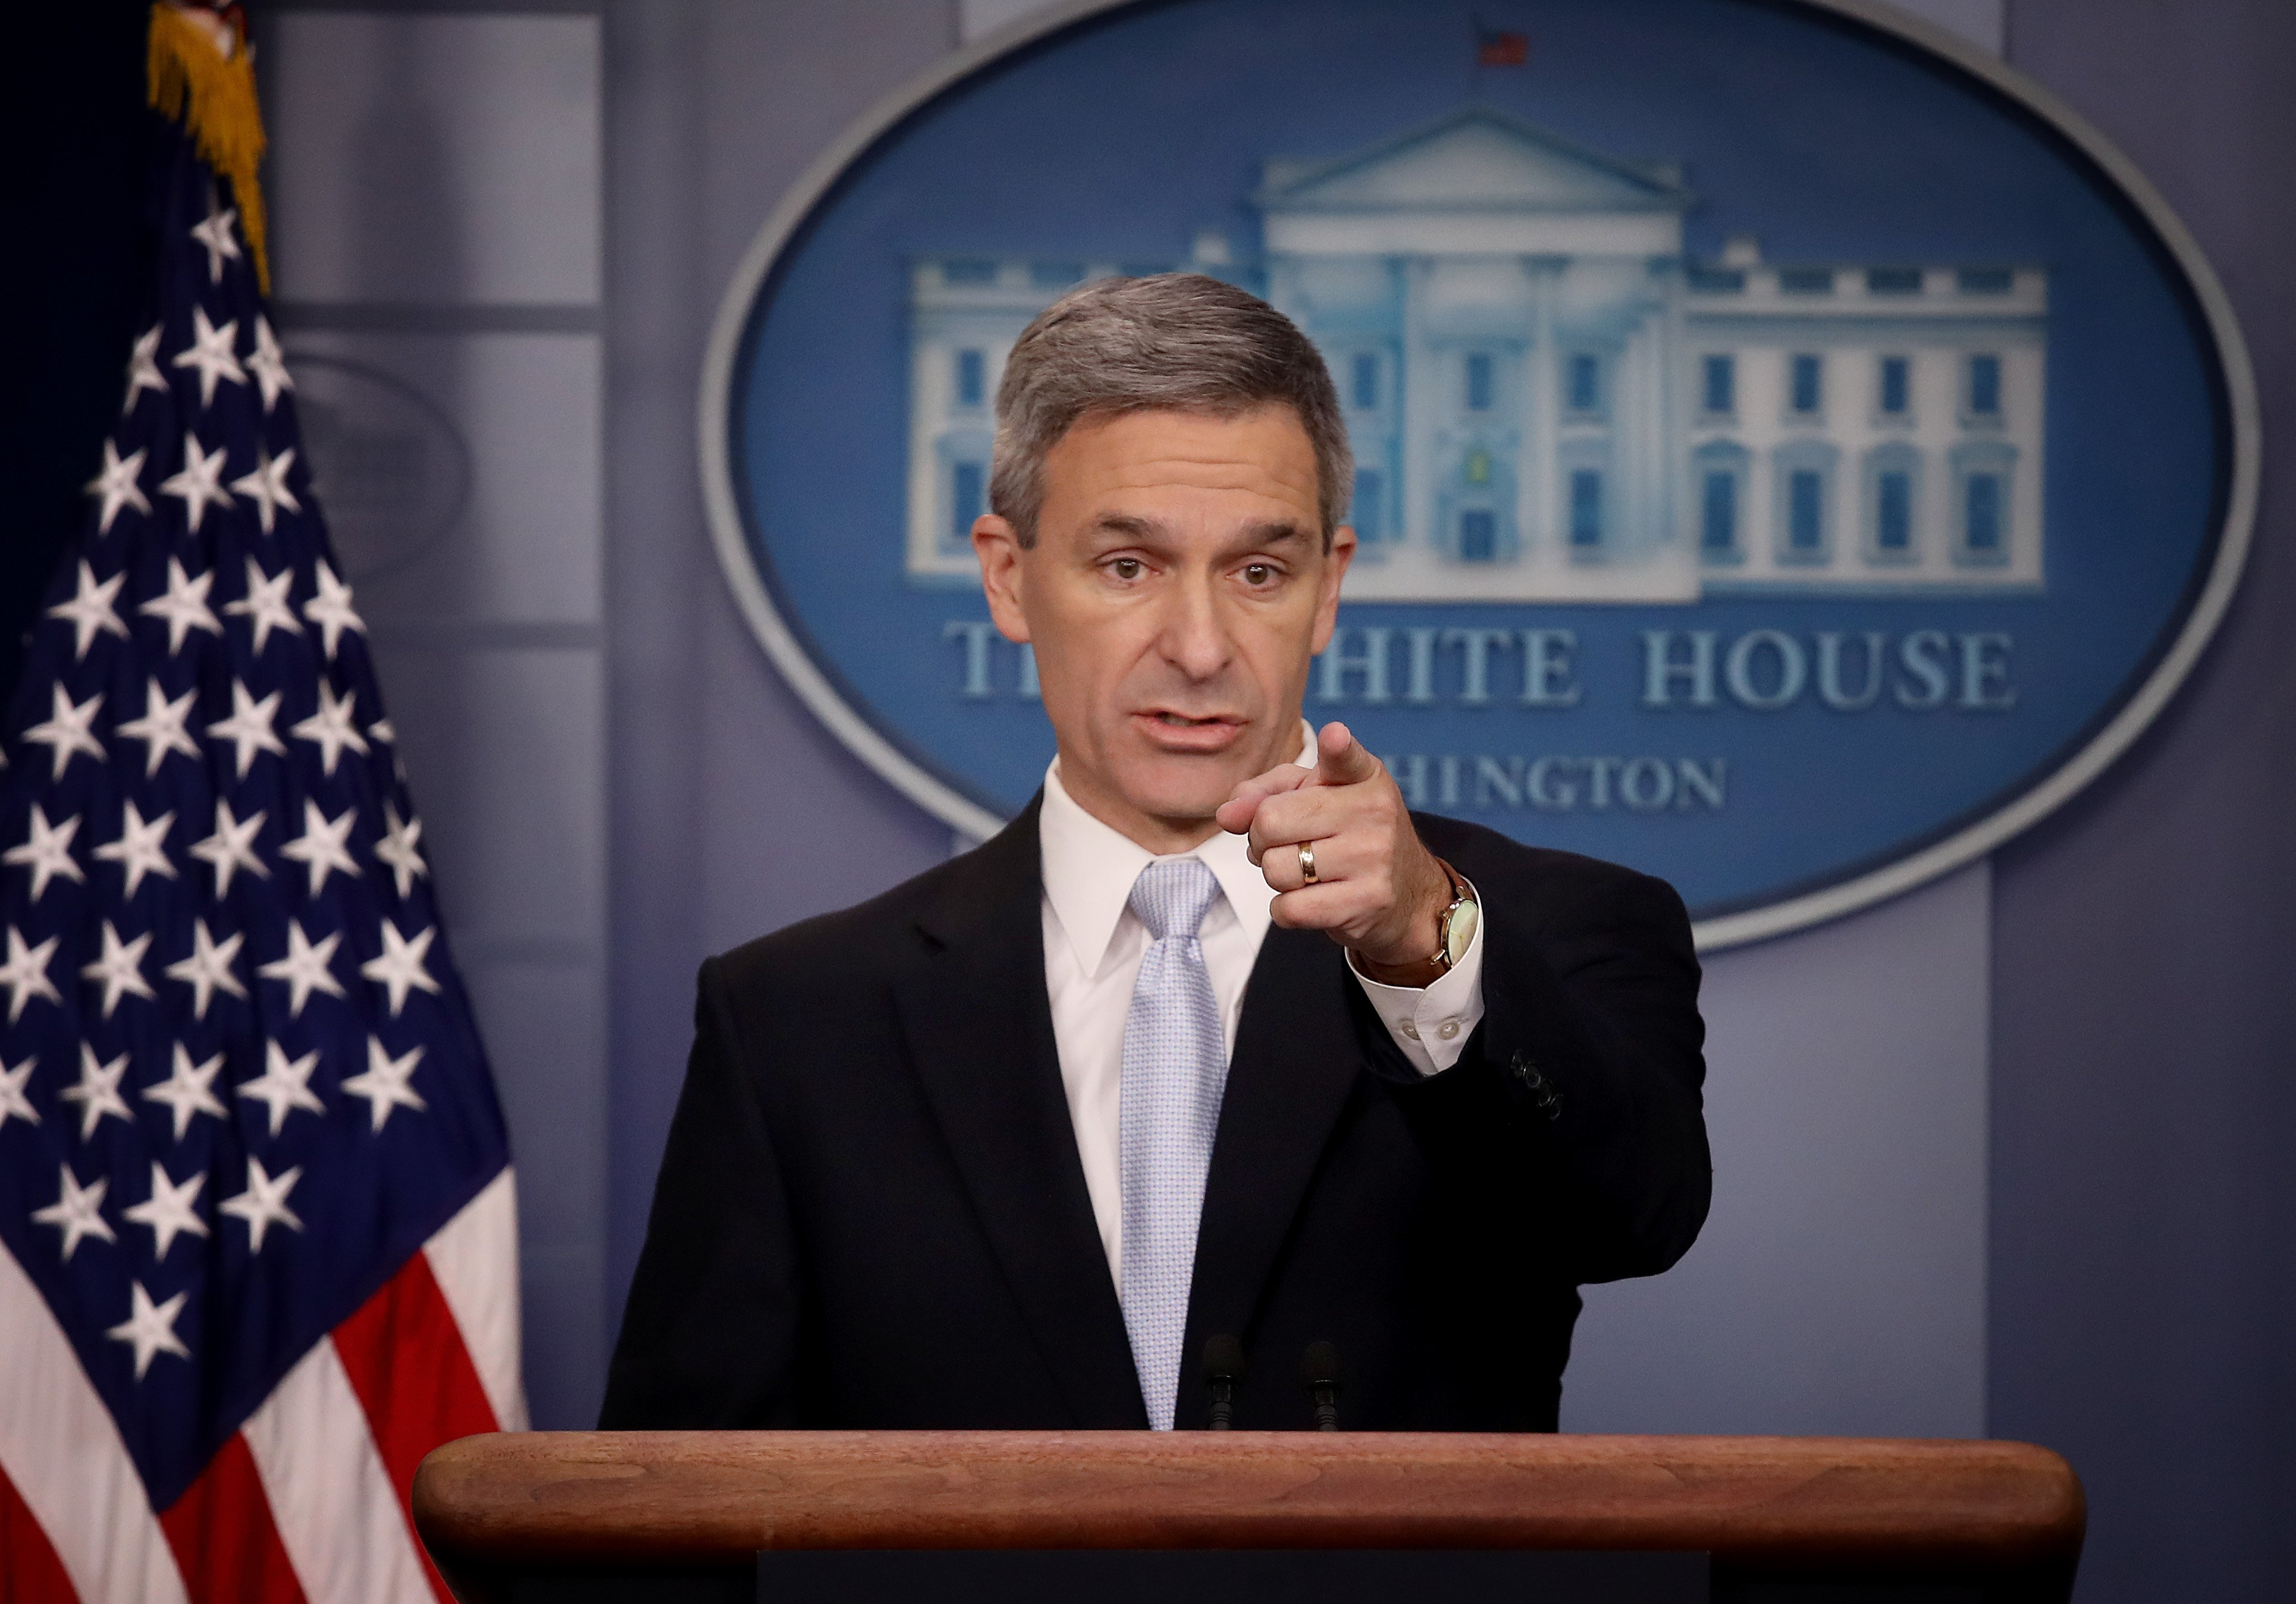 Acting Director of U.S. Citizenship and Immigration Services Ken Cuccinelli speaks at the White House on August 12, 2019. (Win McNamee/Getty Images)